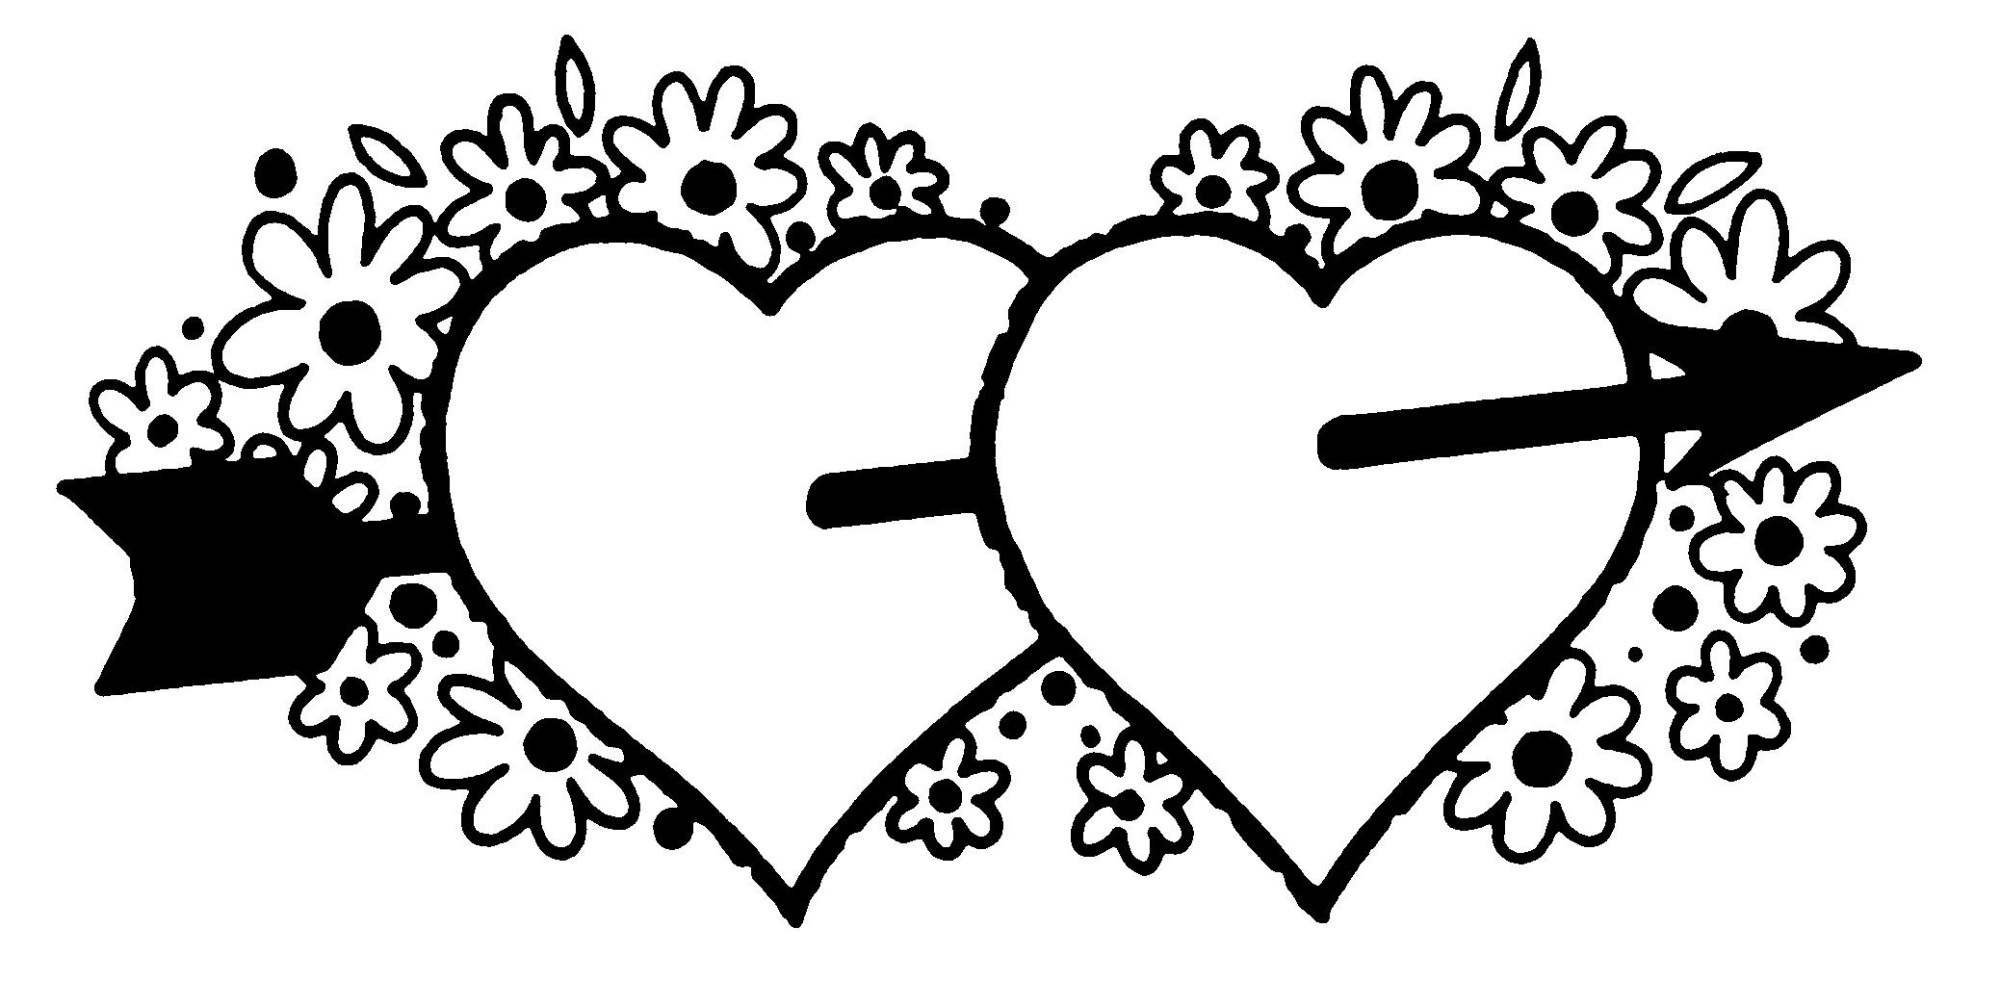 hight resolution of marriage clipart black and white 4